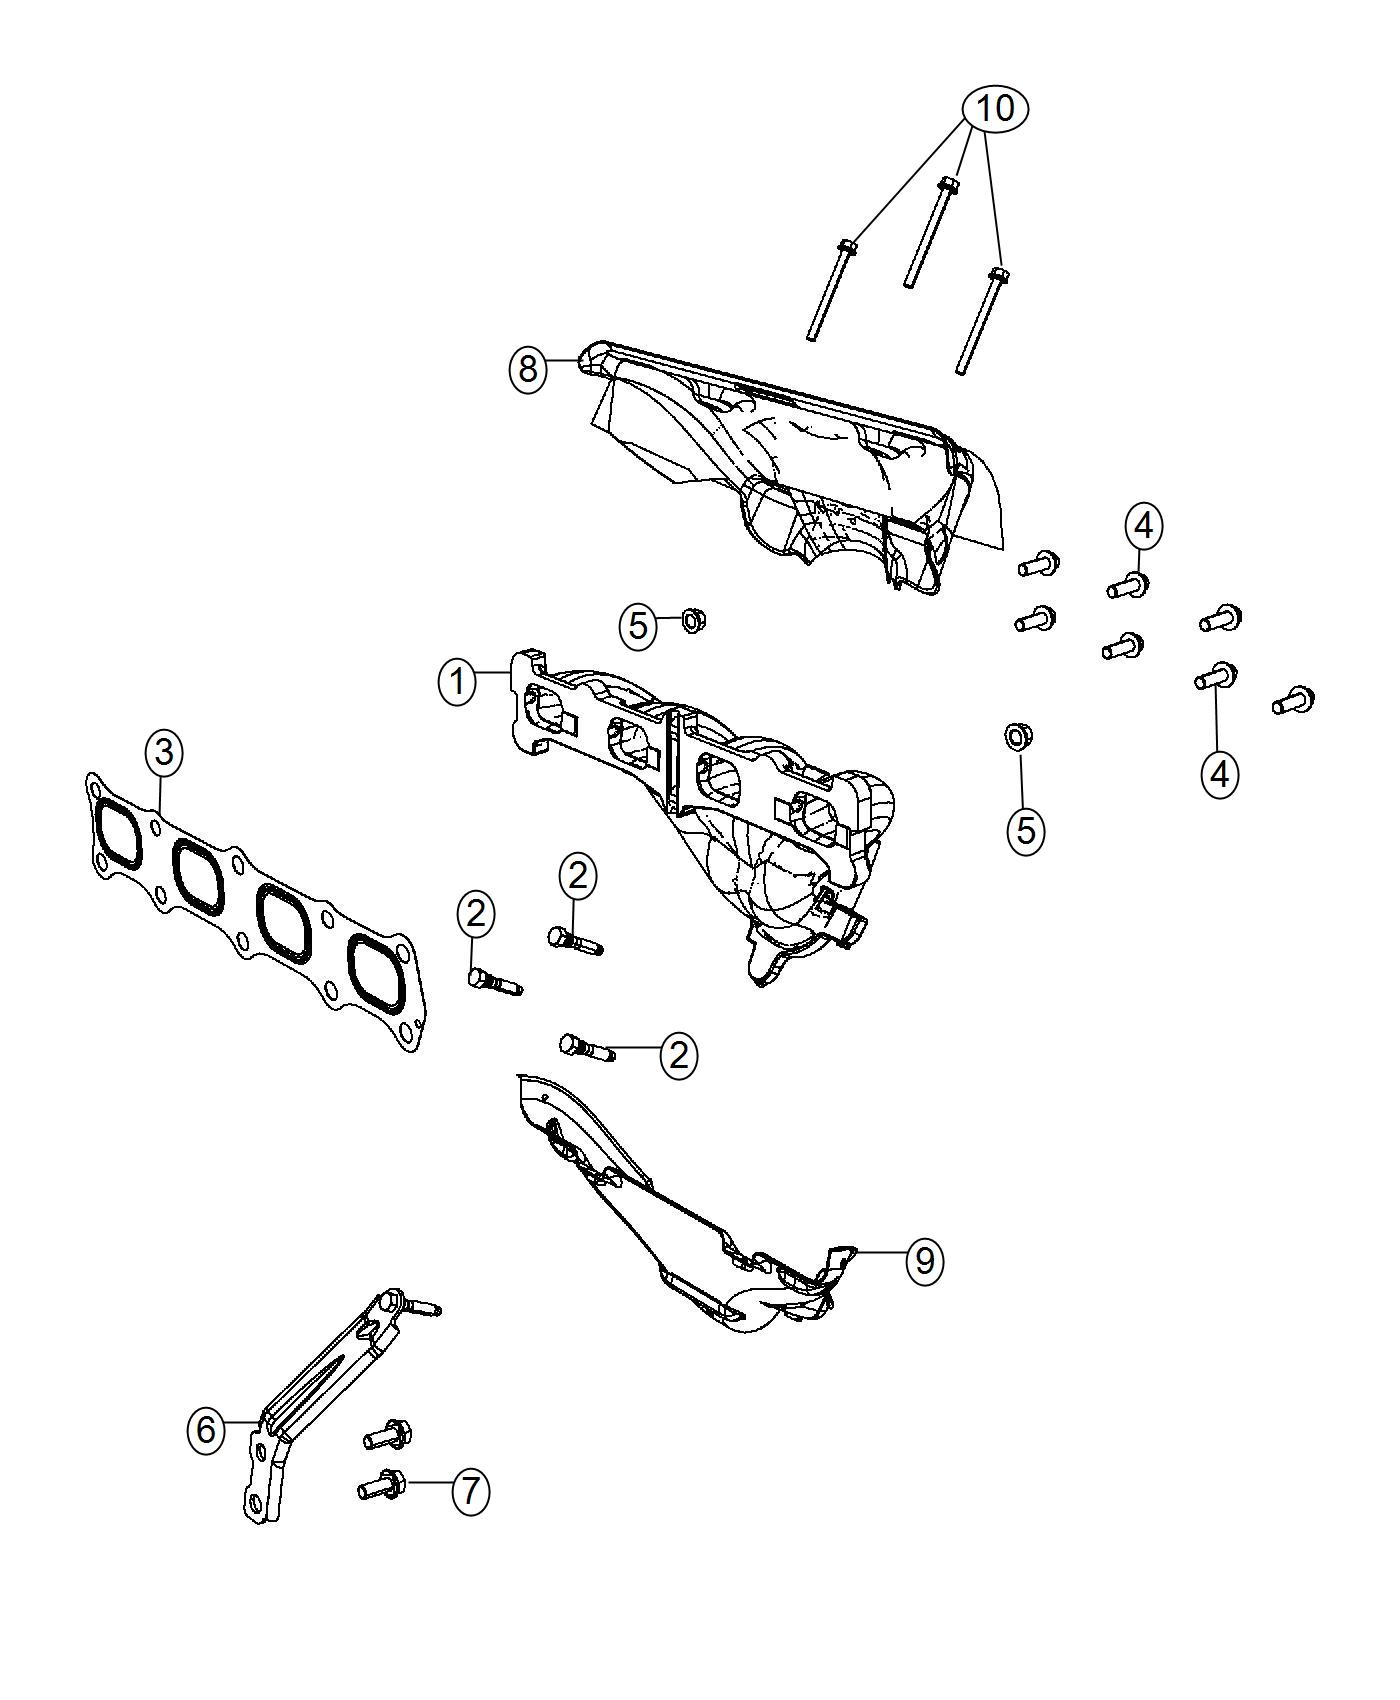 Chrysler 200 Manifold Exhaust 4 Speed Automatic Vlp